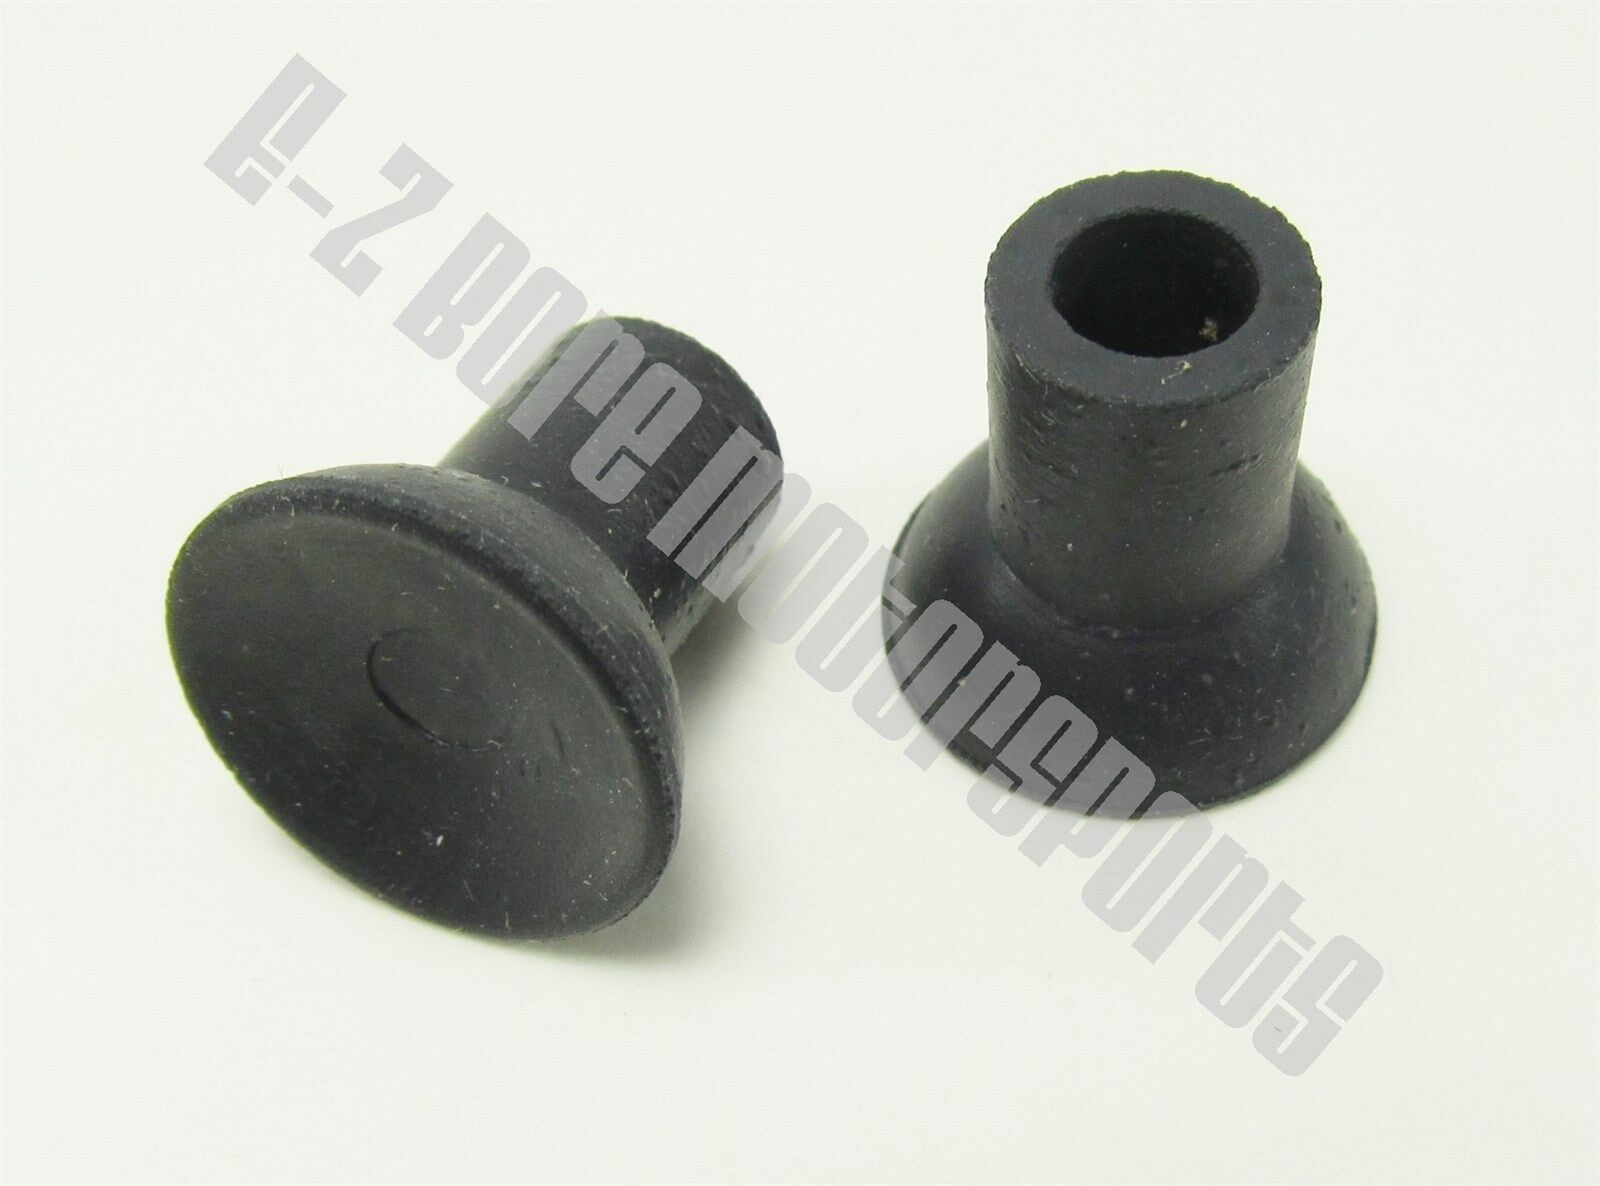 2X Rubber Valve Grinder for Manual Grinding Of Valves Lapping Tool Suction-Cup W